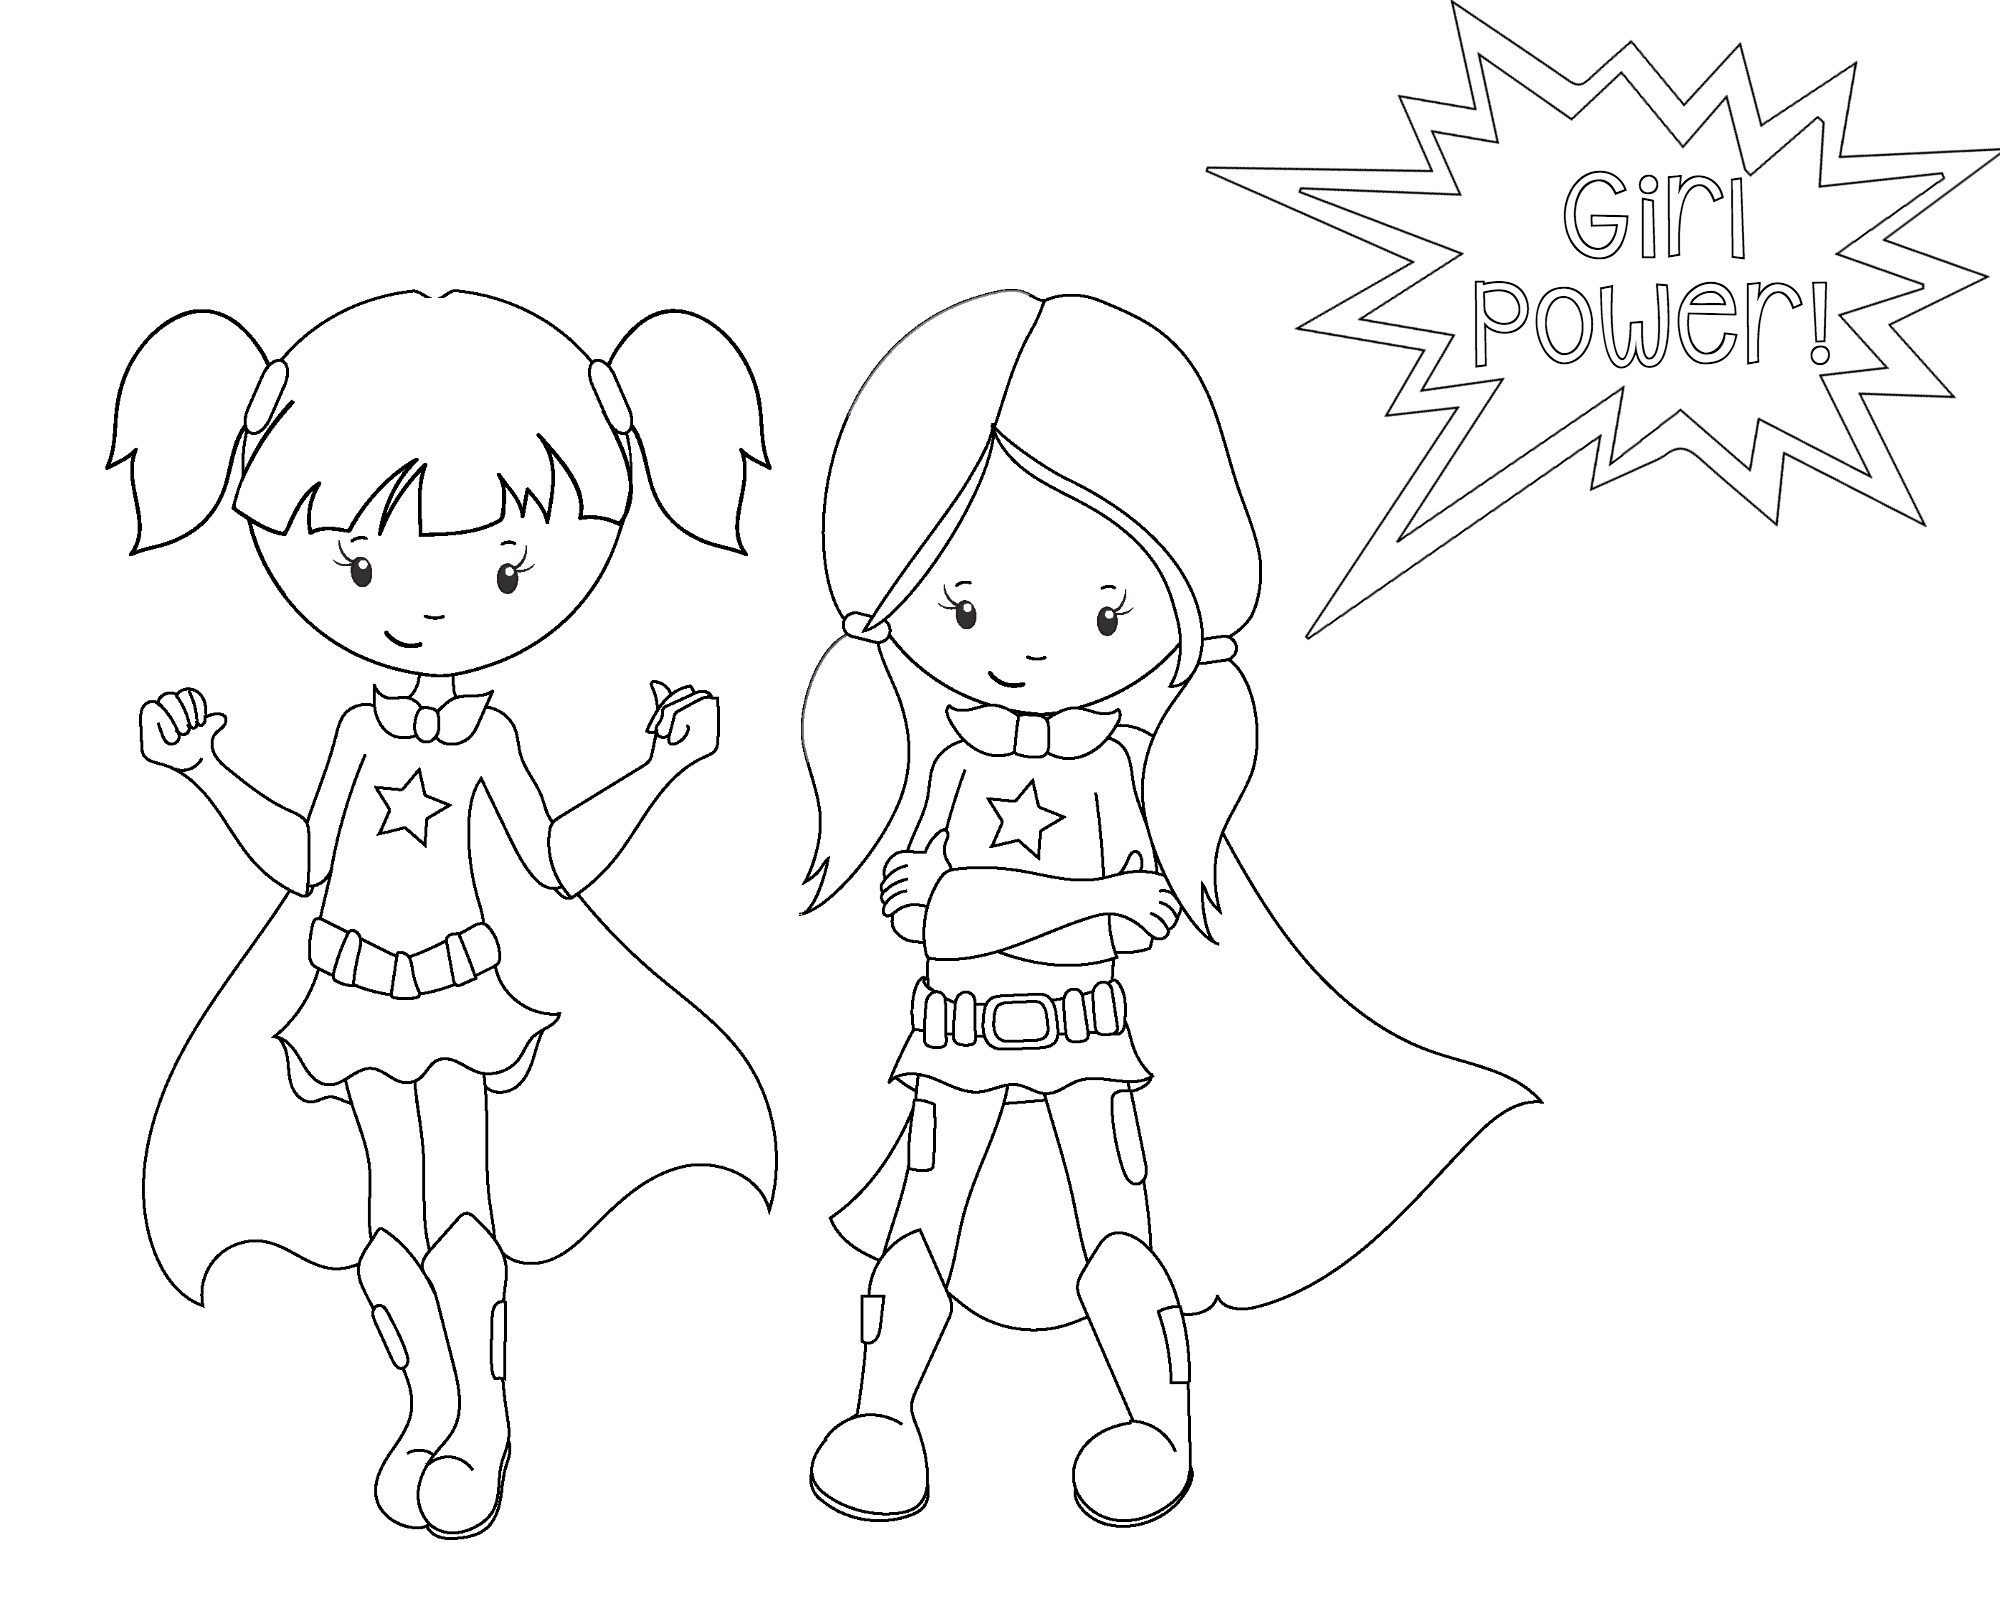 Free Printable Superhero Coloring Sheets for Kids - Crazy ...